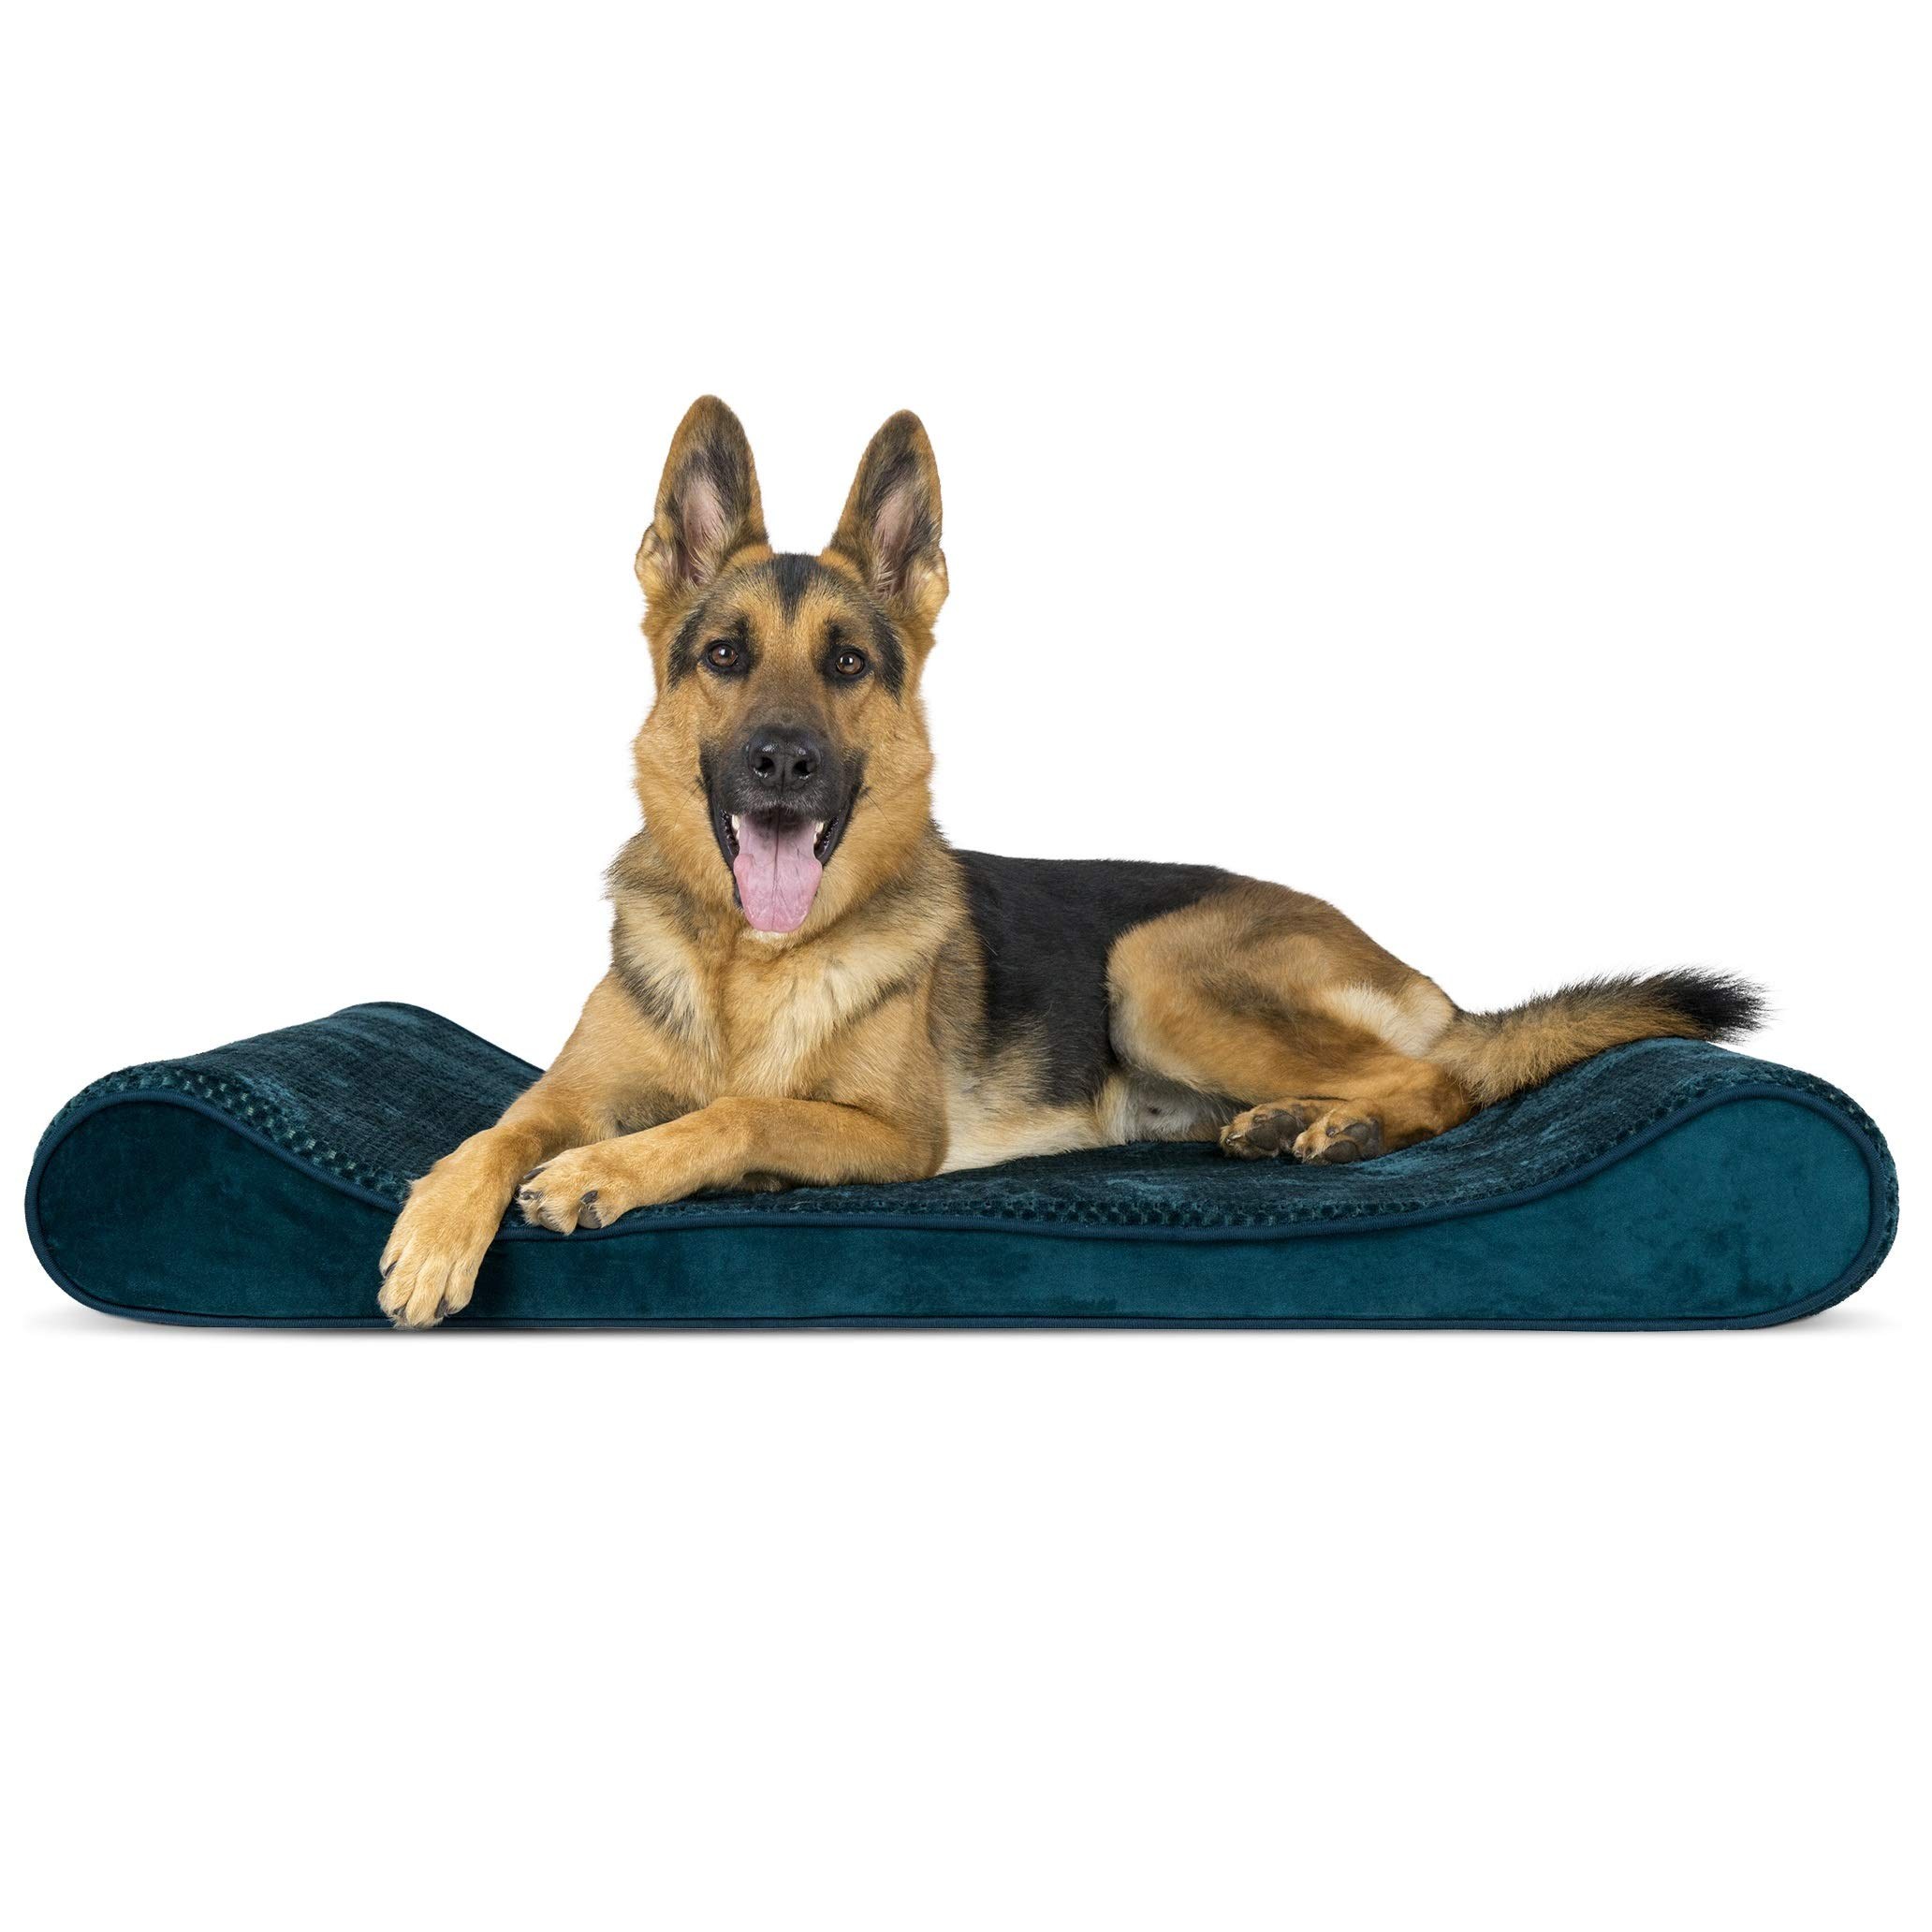 Furhaven Pet Dog Bed   Orthopedic Minky Plush & Velvet Ergonomic Luxe Lounger Cradle Mattress Contour Pet Bed w/ Removable Cover for Dogs & Cats, Spruce Blue, Jumbo by Furhaven